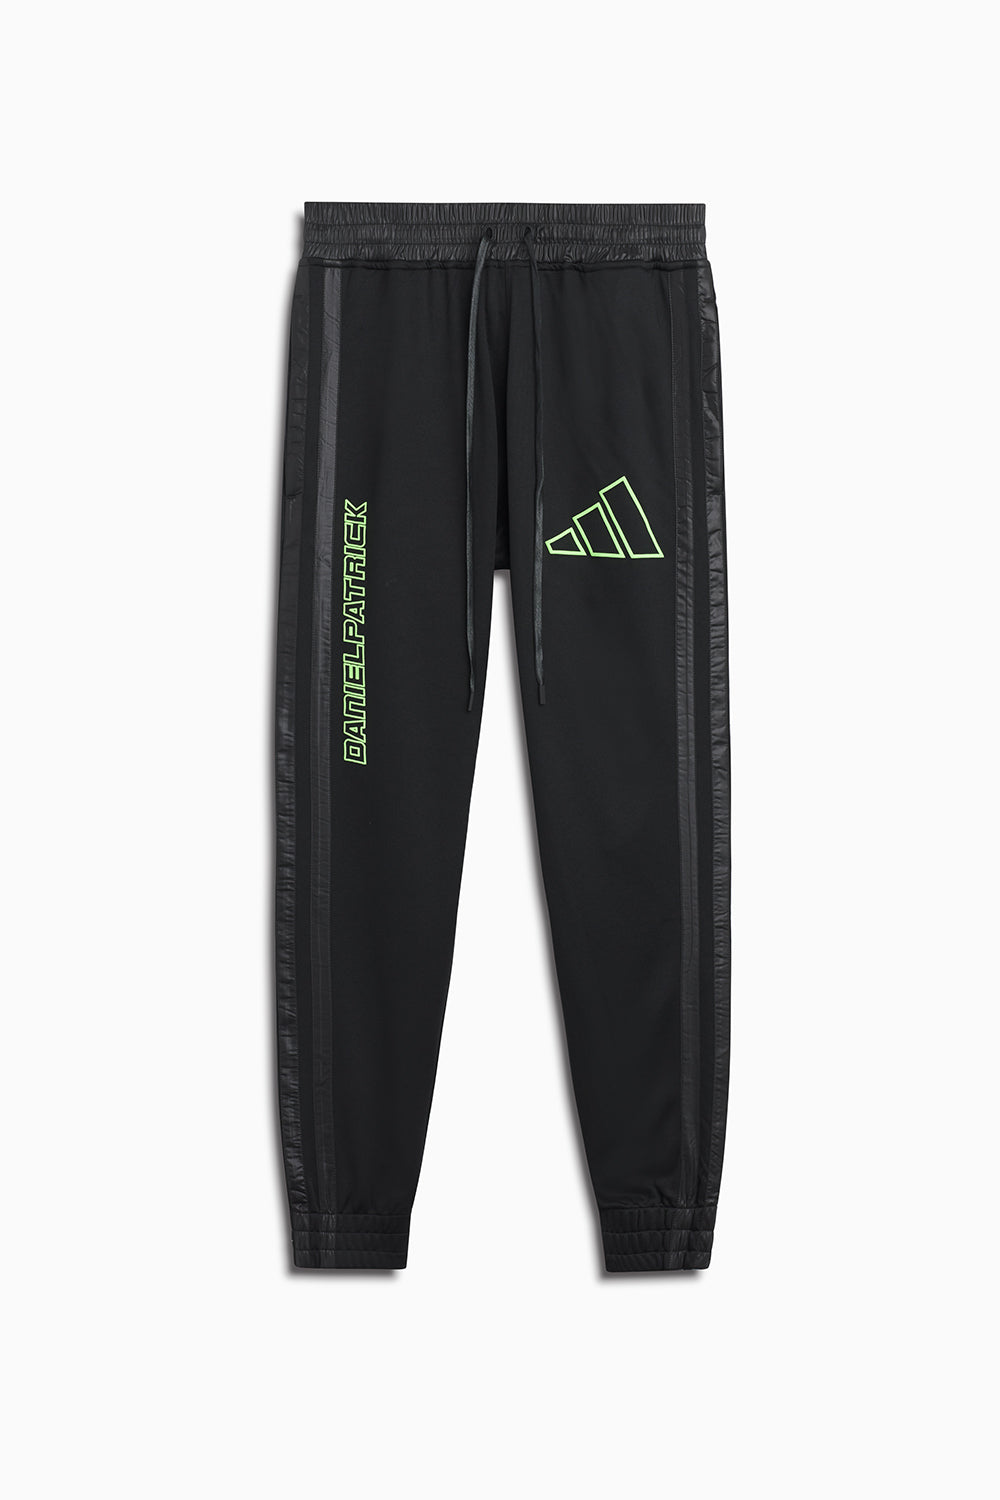 DP adidas Basketball x Harden pants / black + signal green